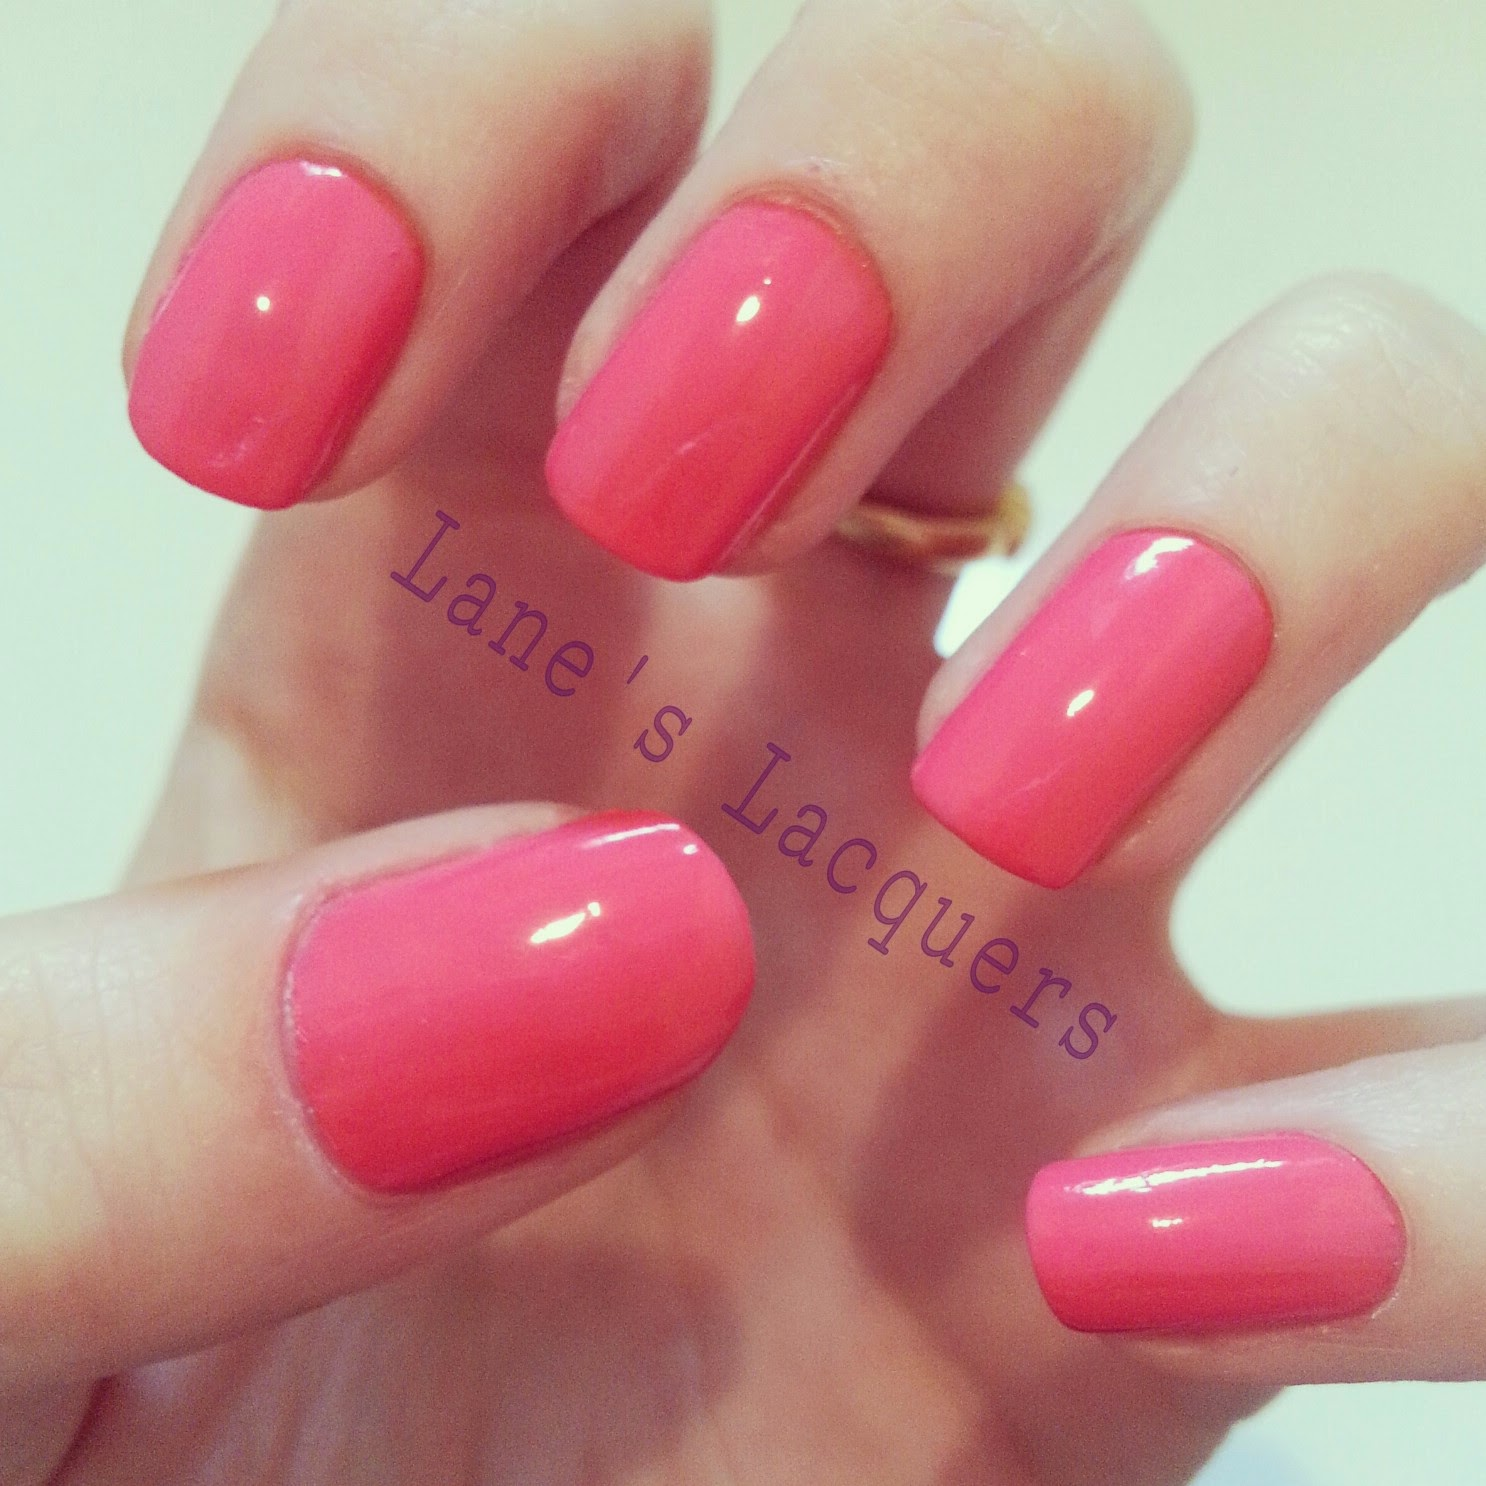 models-own-summer-hypergels-searing-pink-swatch-manicure